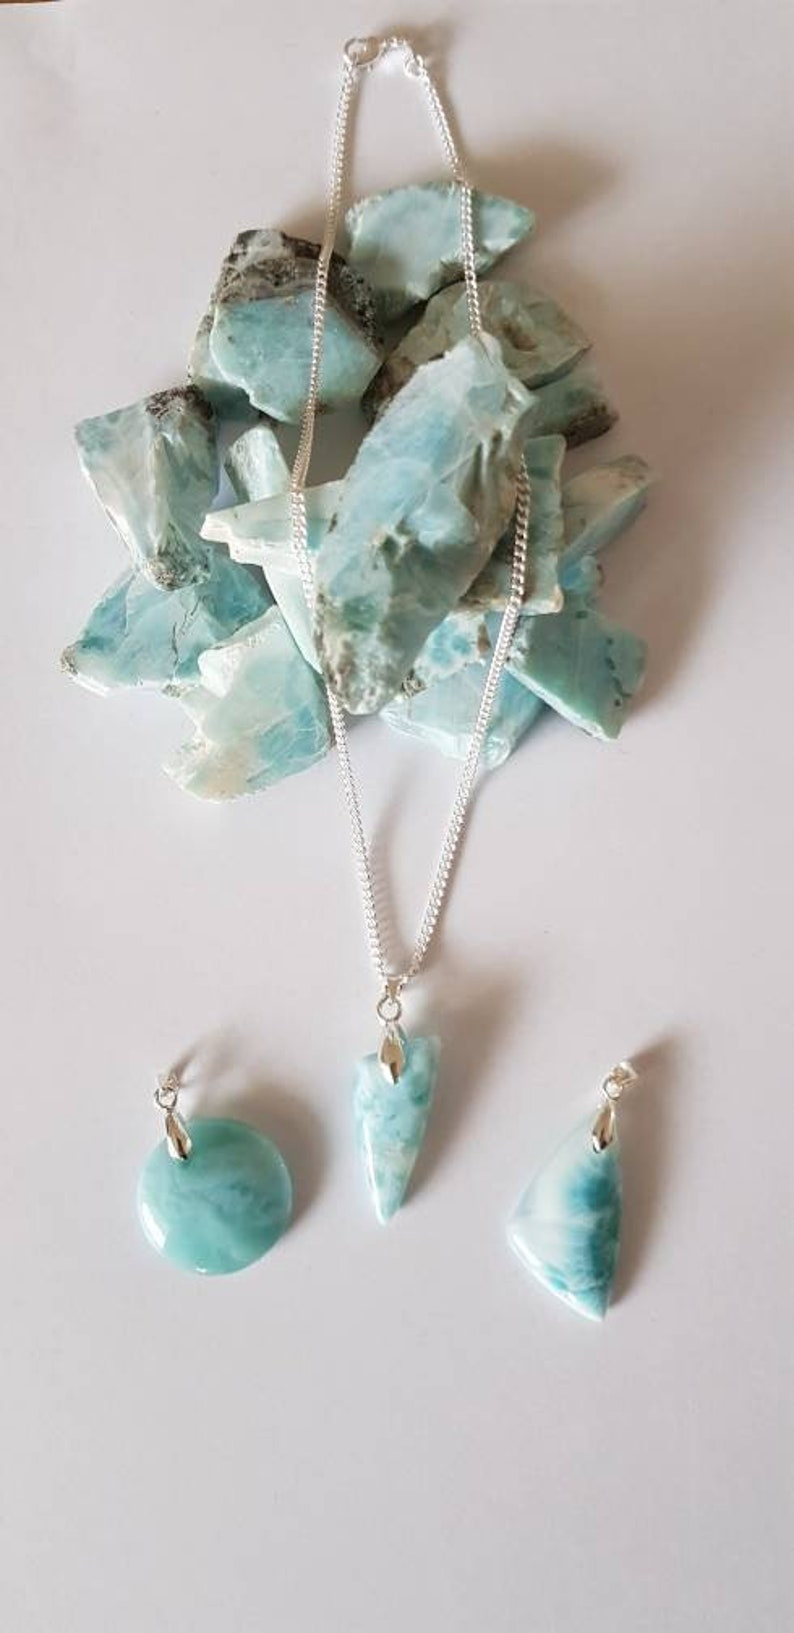 Larimar pendant from the Dominican Republic Also known as the Atlantis Stone Gives spiritual and spiritual strength.